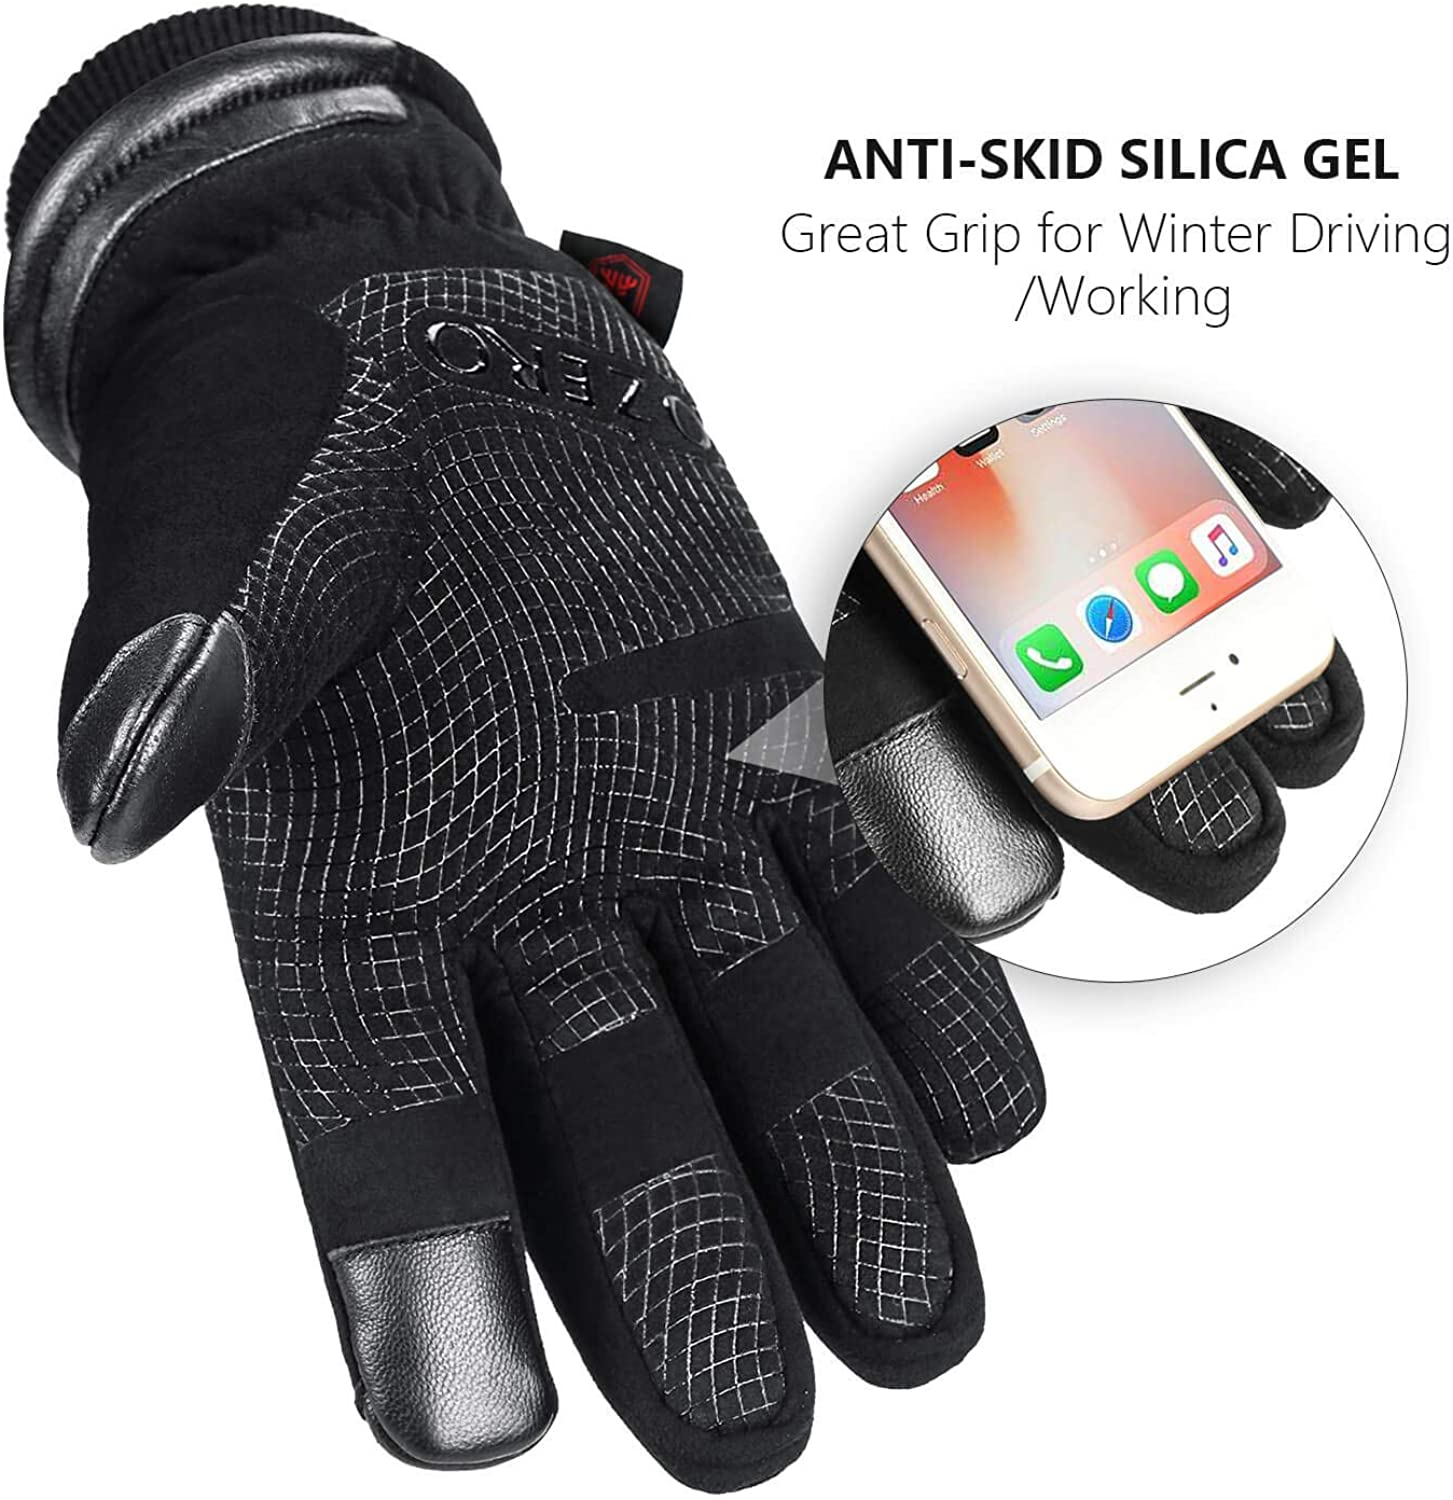 30℉ Waterproof Winter Gloves for Men Touch Screen Thermal in Cold Weather for Motorcycle Cycling Driving OZERO